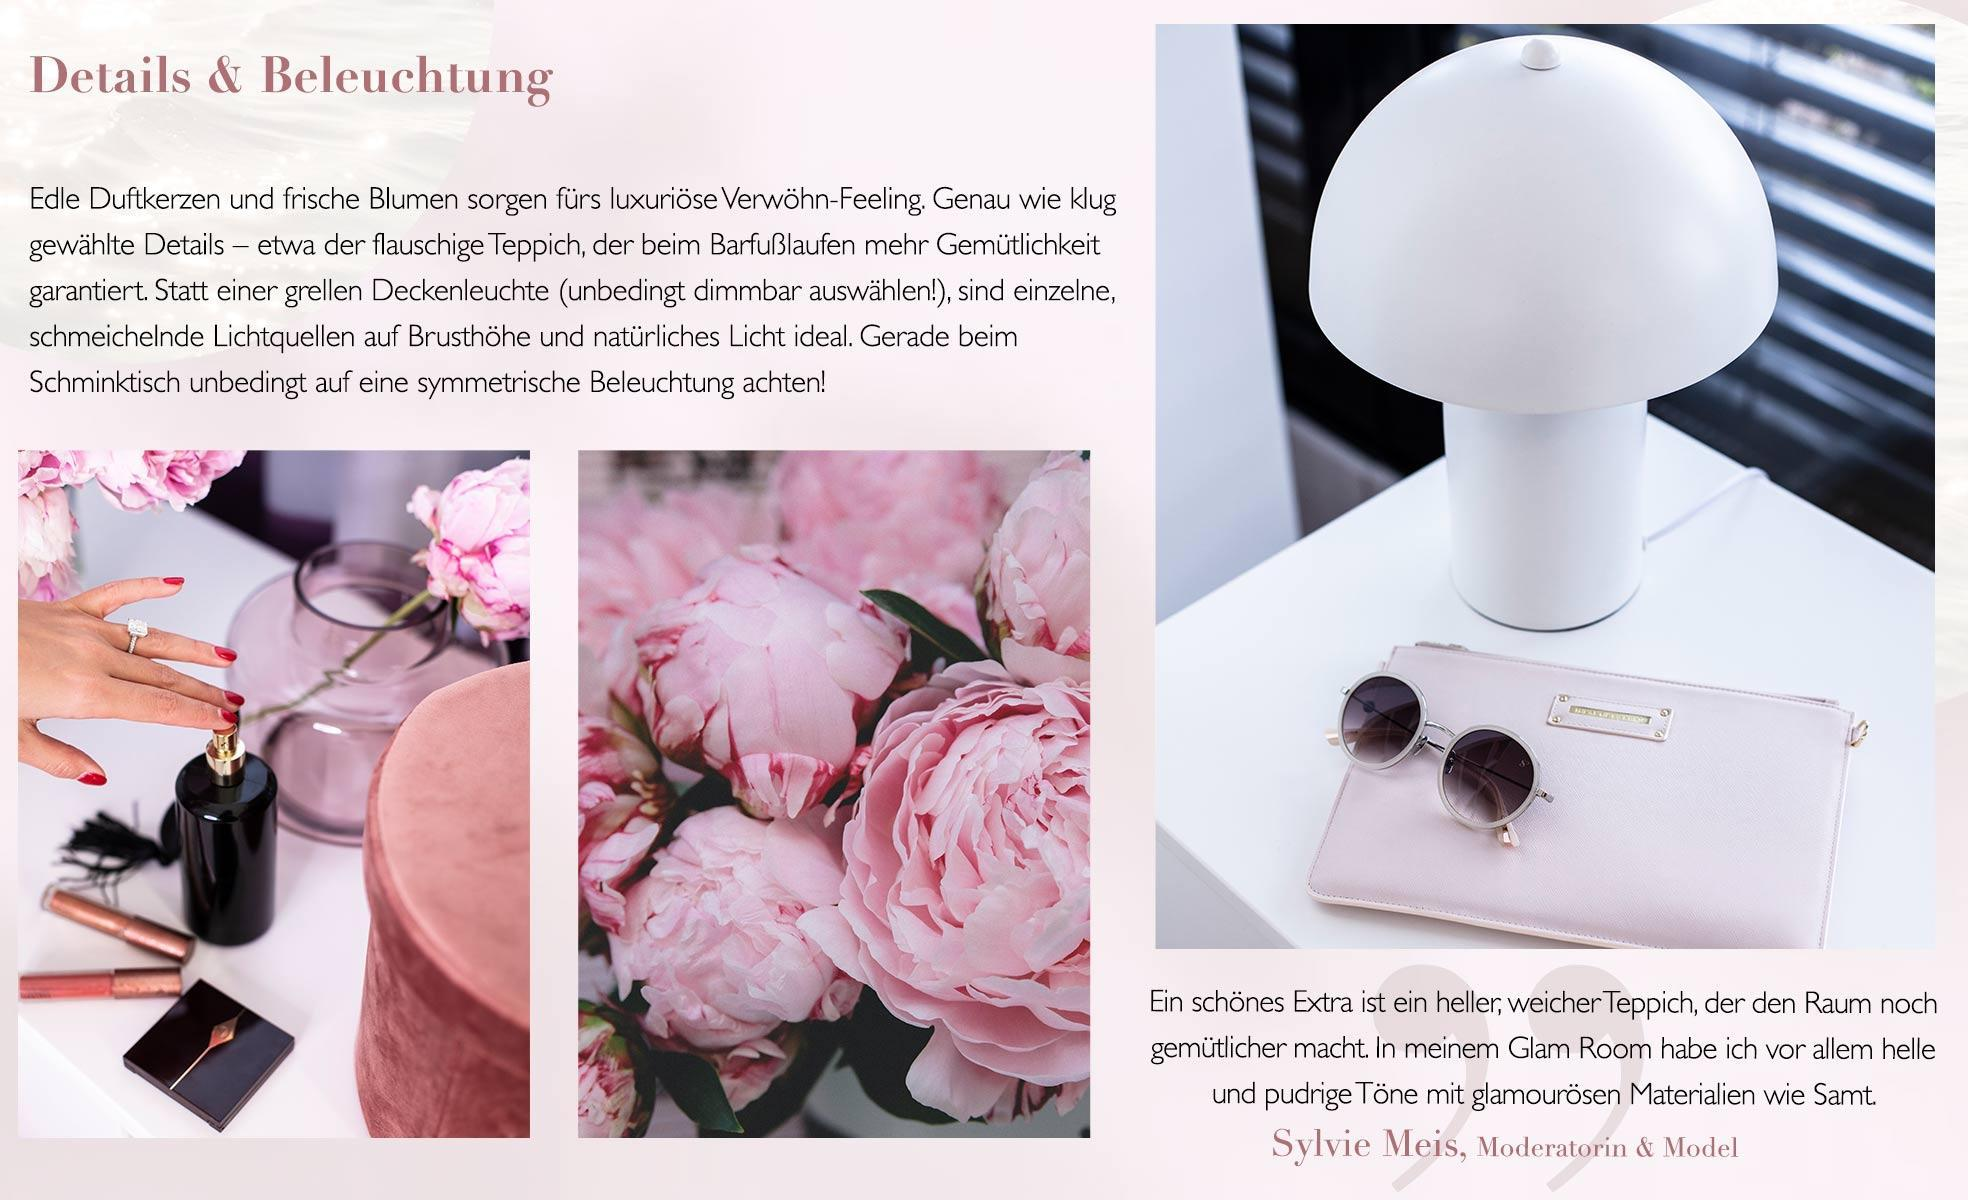 Sylvie Meiss Glam Room Beleuchtung